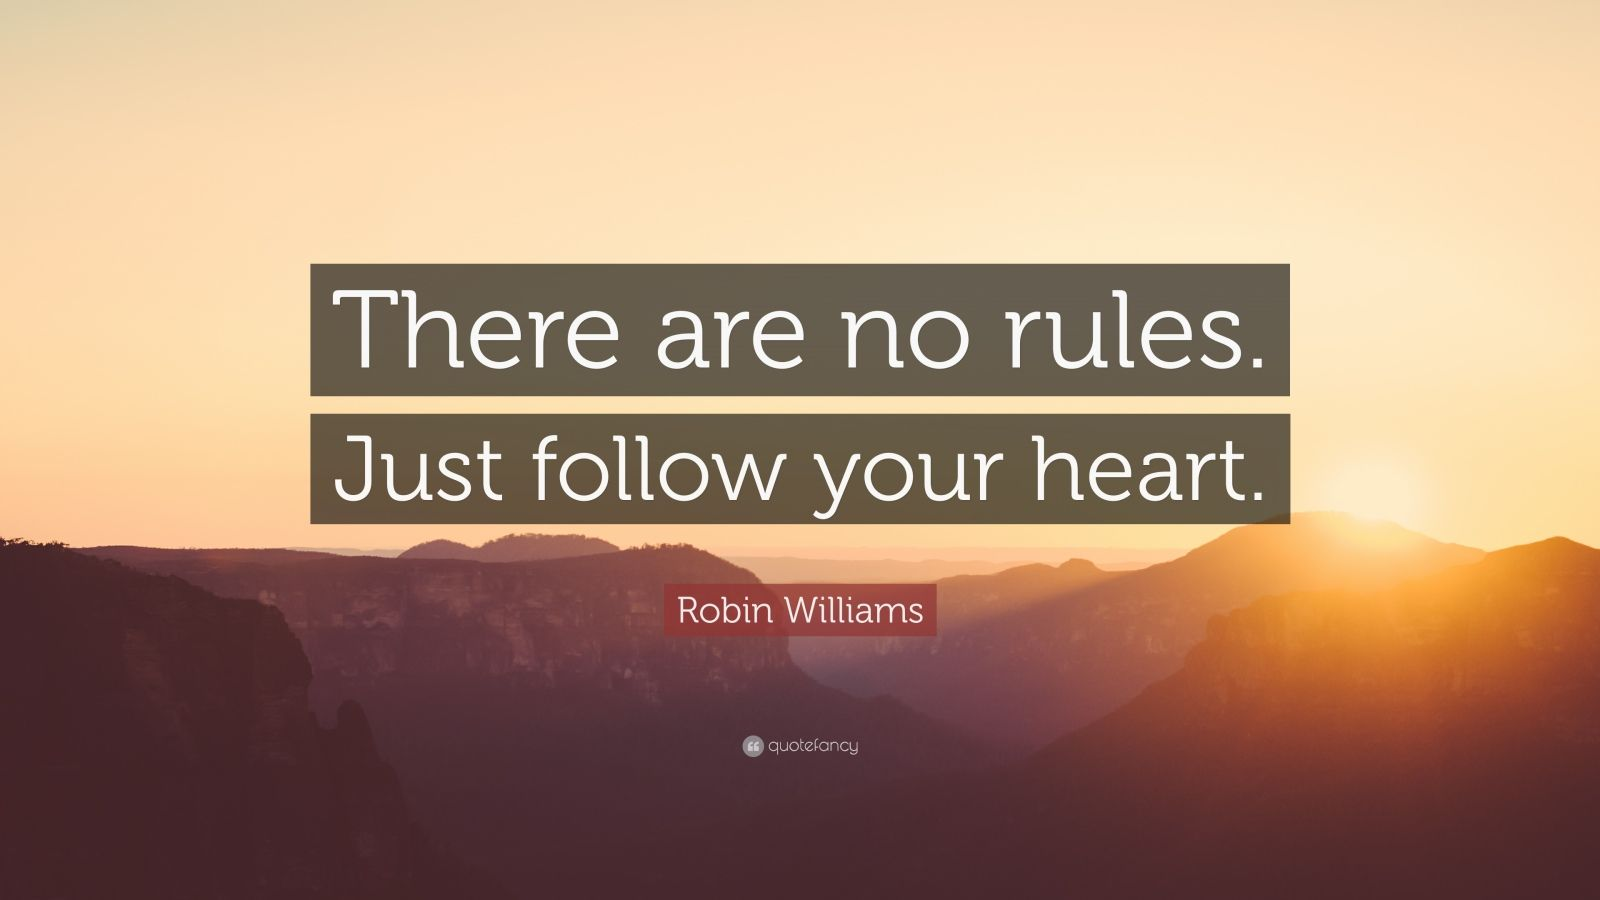 Theodore Roosevelt Wallpaper Quote Robin Williams Quote There Are No Rules Just Follow